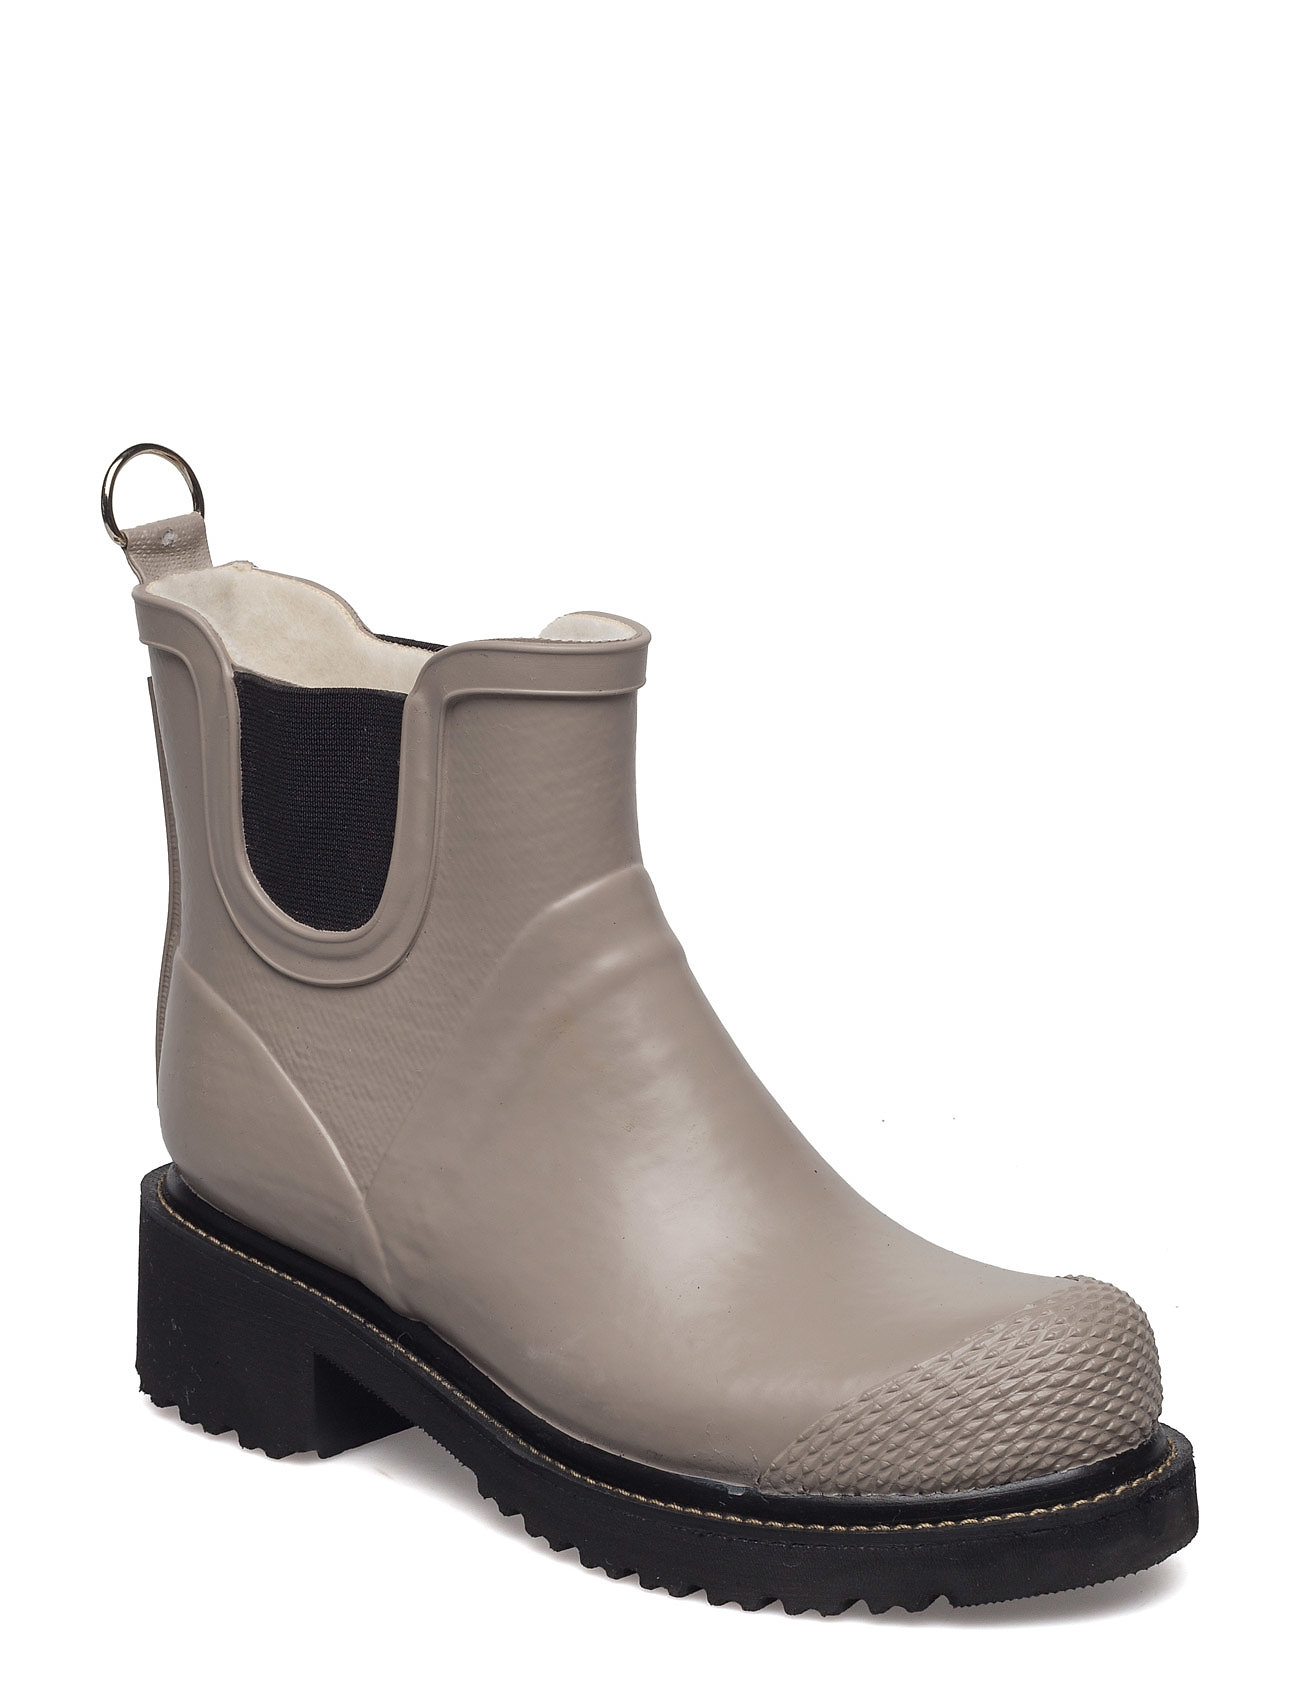 Image of Short Rub High Heel Shoes Boots Ankle Boots Ankle Boots Flat Heel Beige Ilse Jacobsen (2644463743)